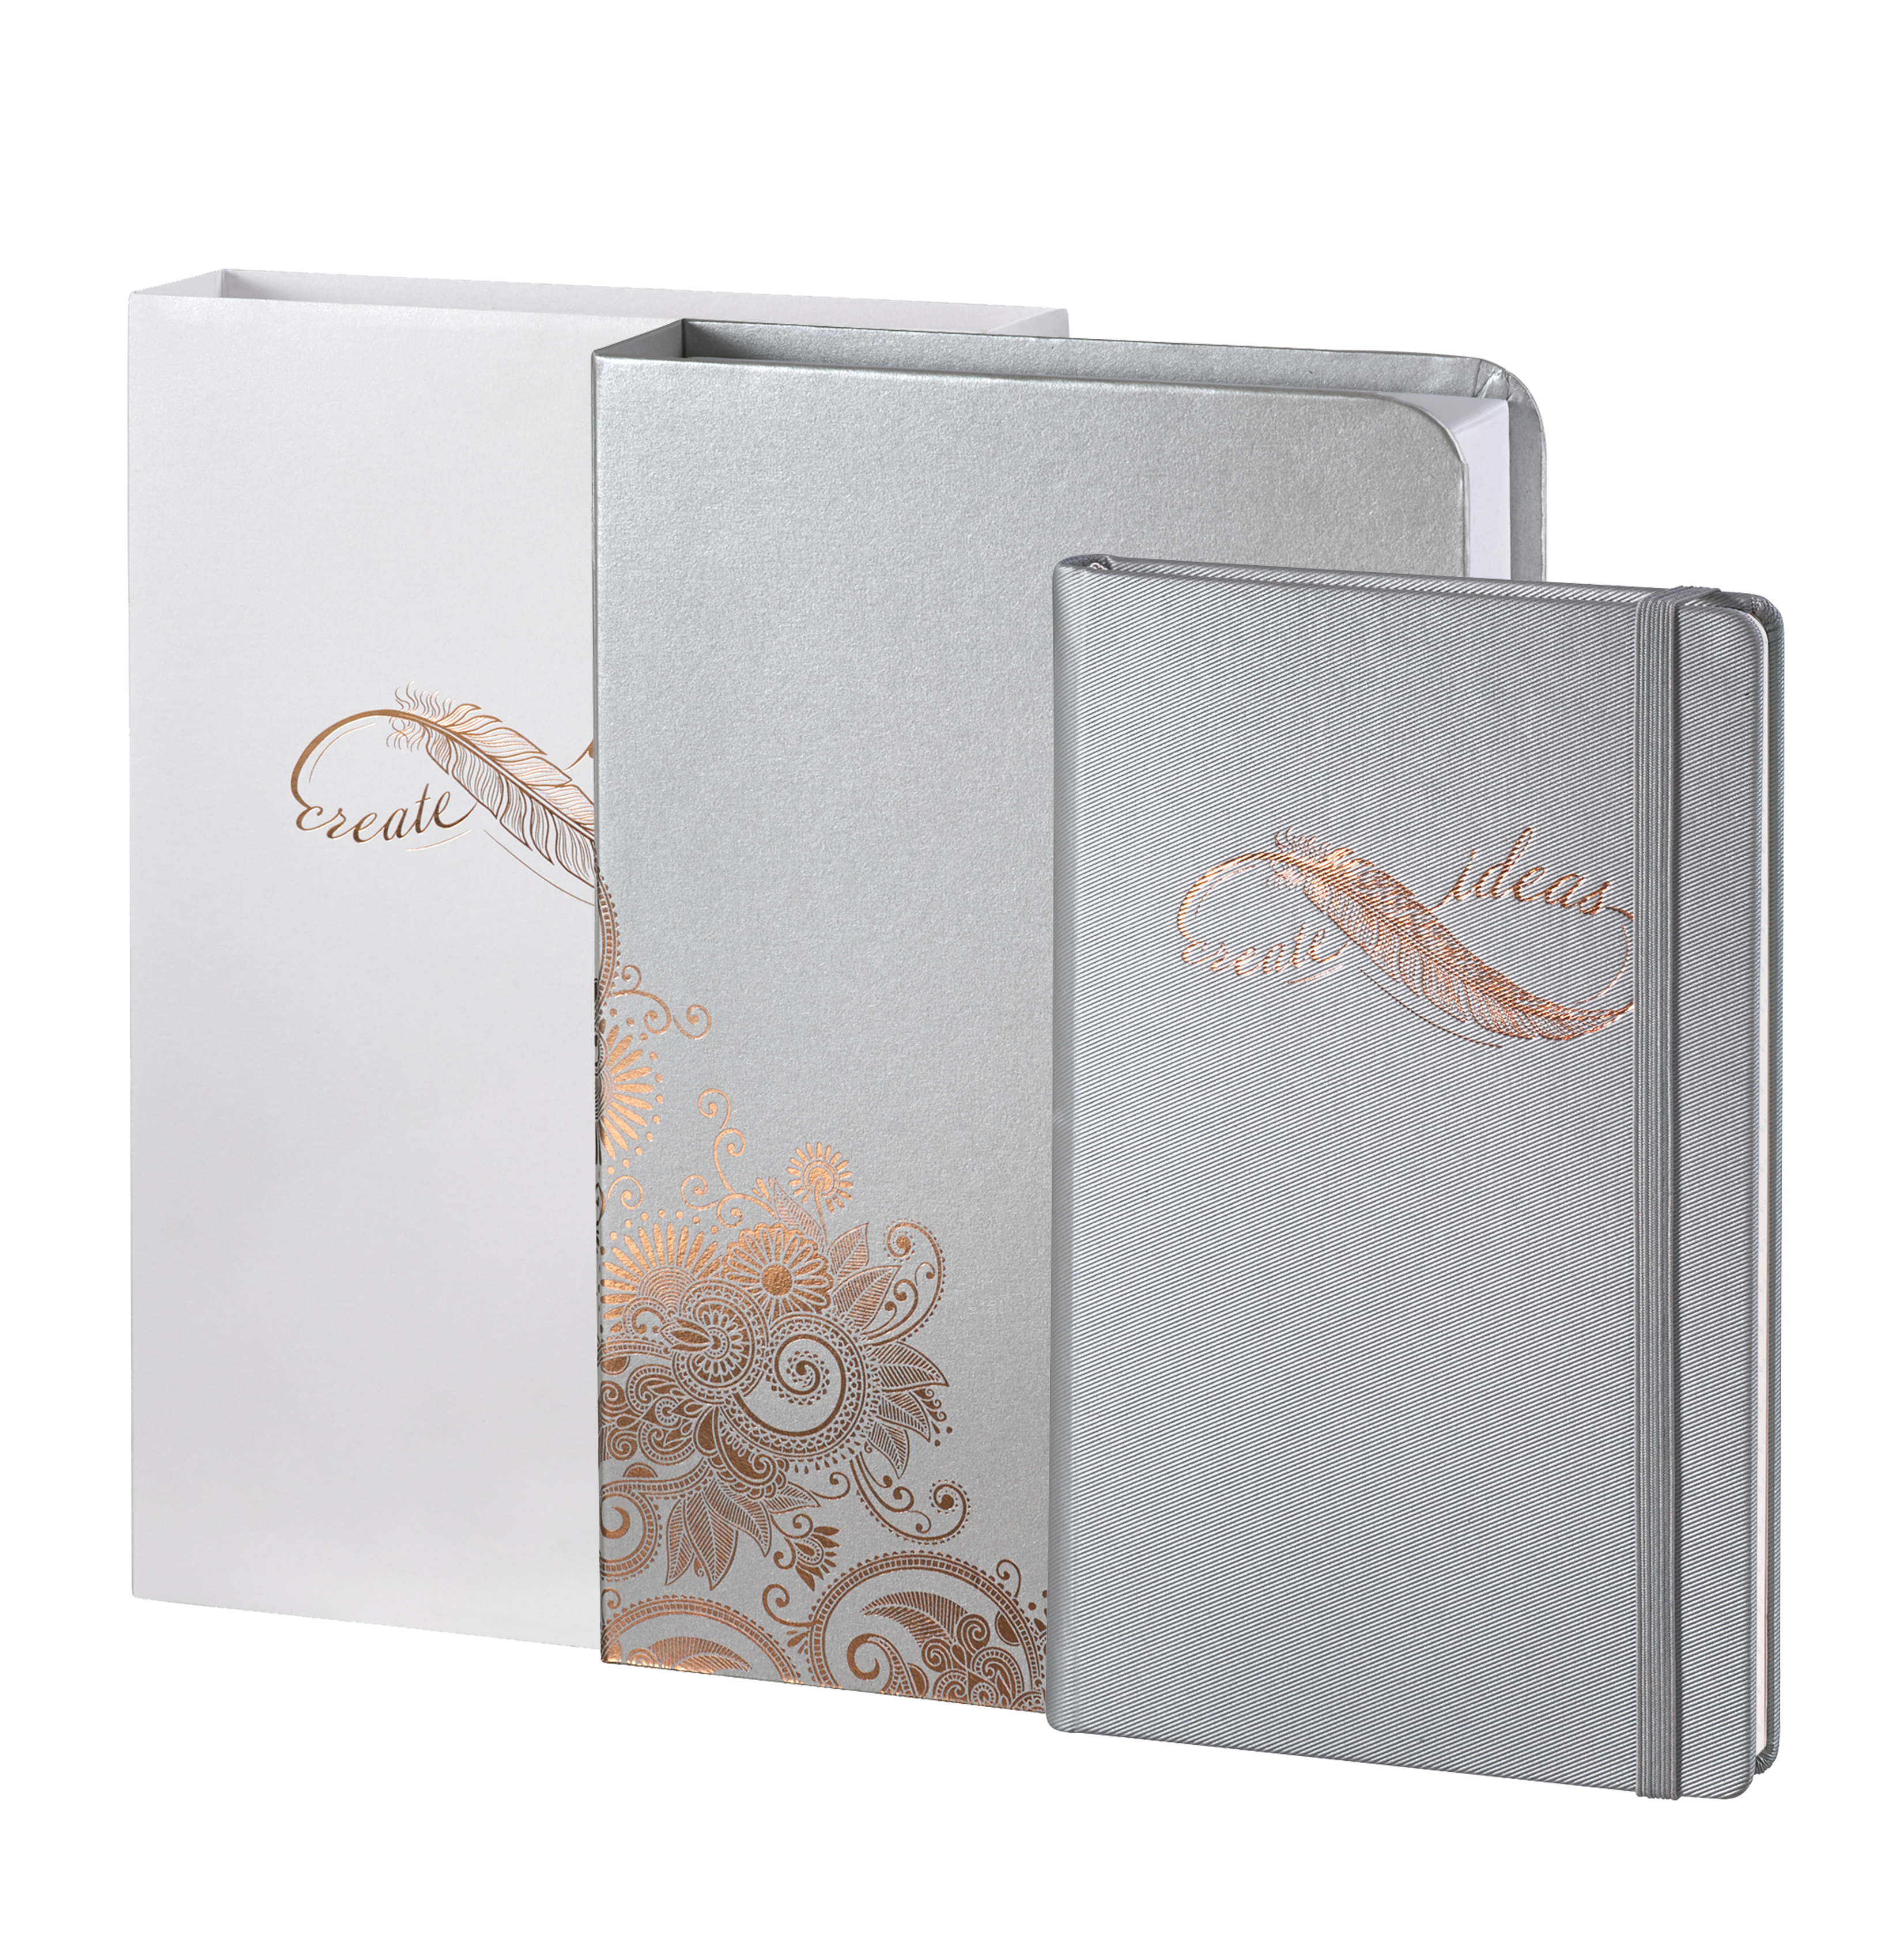 Notebook texture png. Charm birthday gifts for